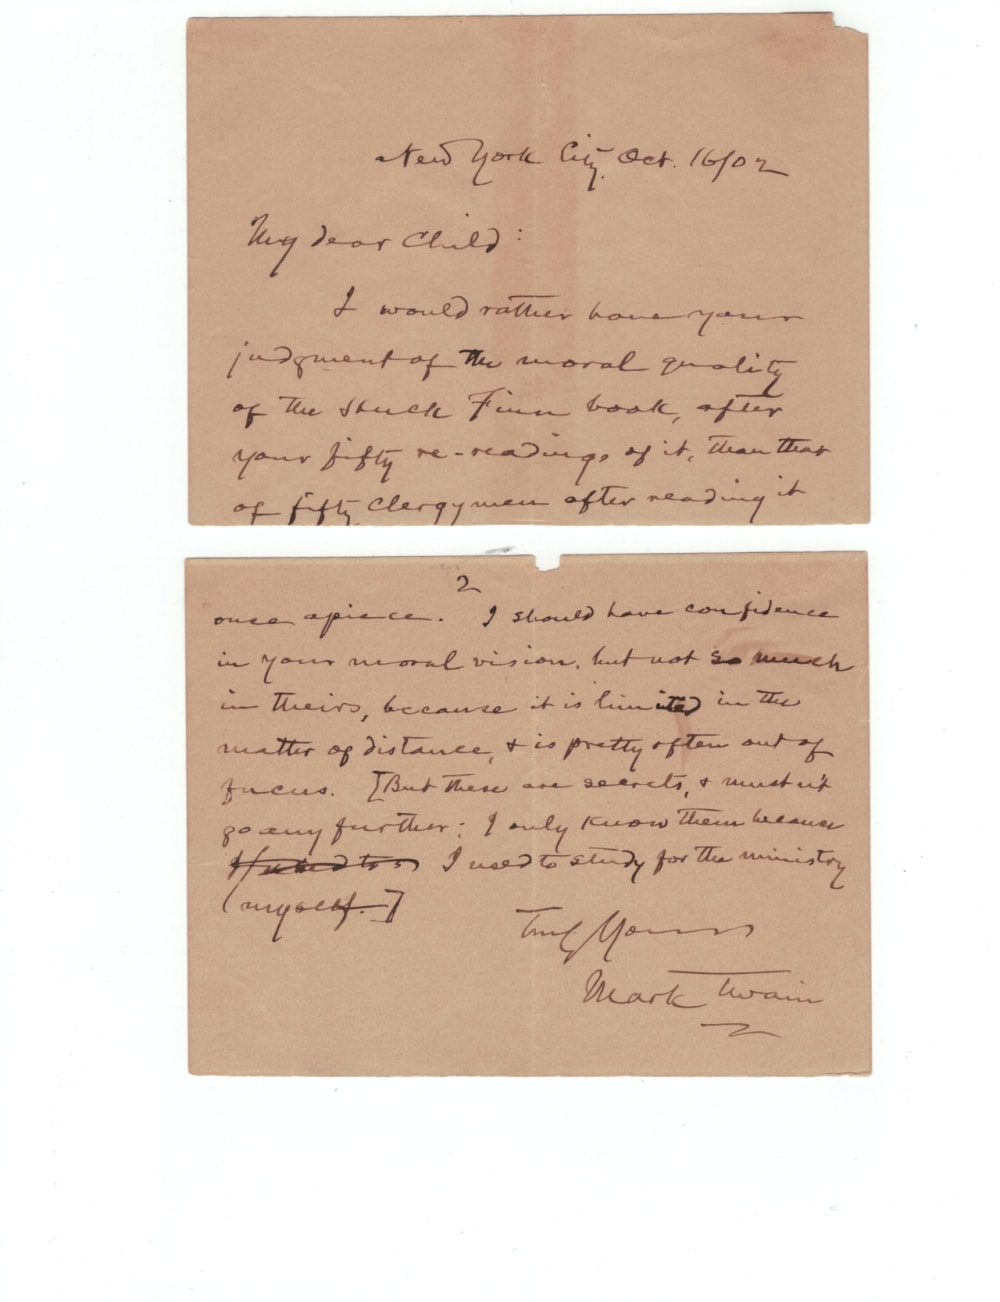 2. A LETTER MARK TWAIN WROTE TO A 12-YEAR-OLD FAN